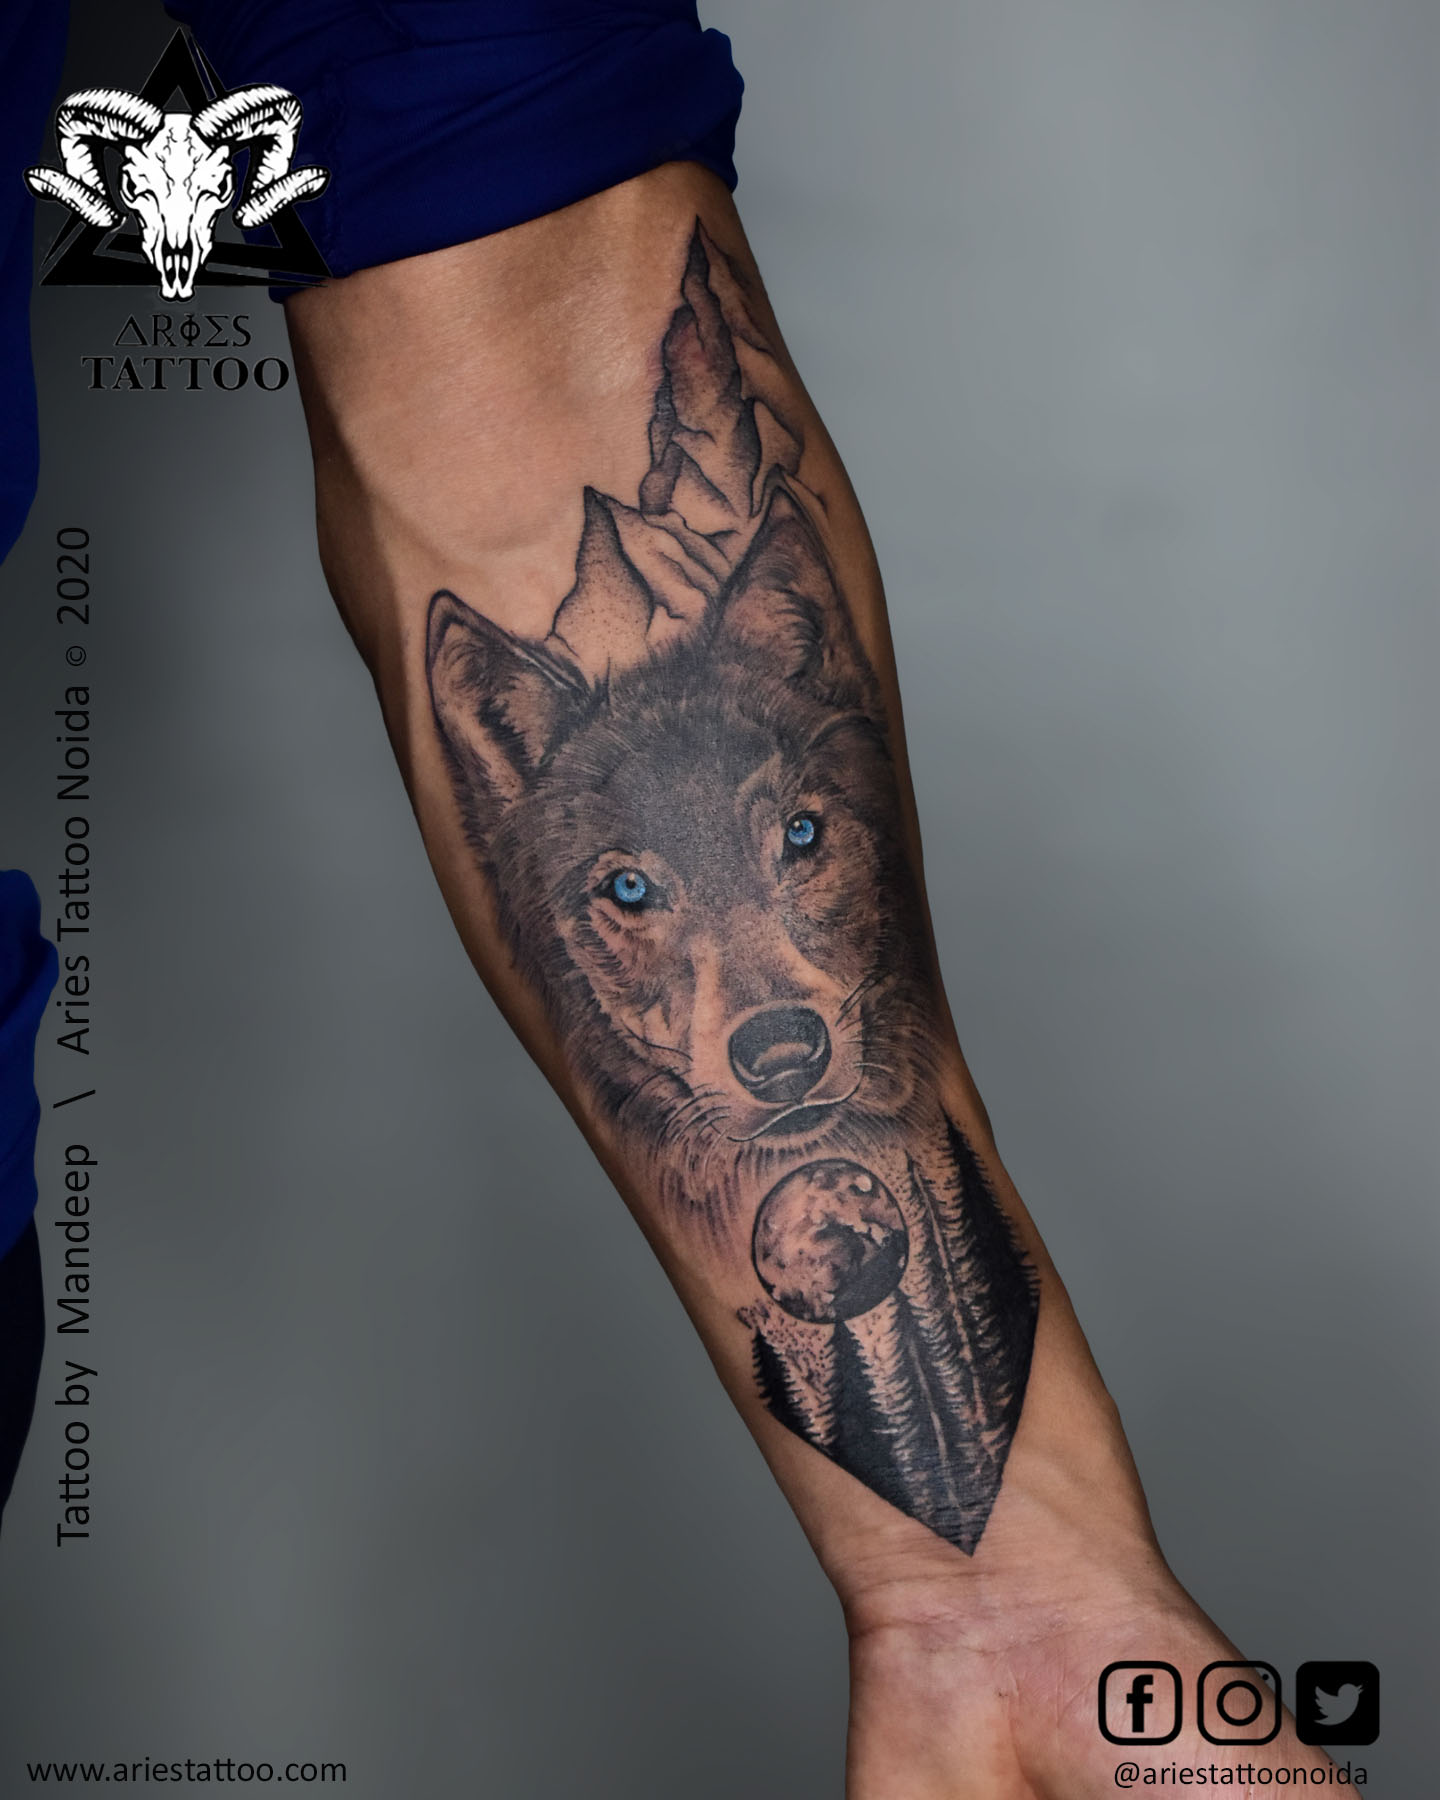 Wild wolf with moon forest tattoo_mandeep|Aries Tattoo Noida | Tattoo Shop and Studio In Noida